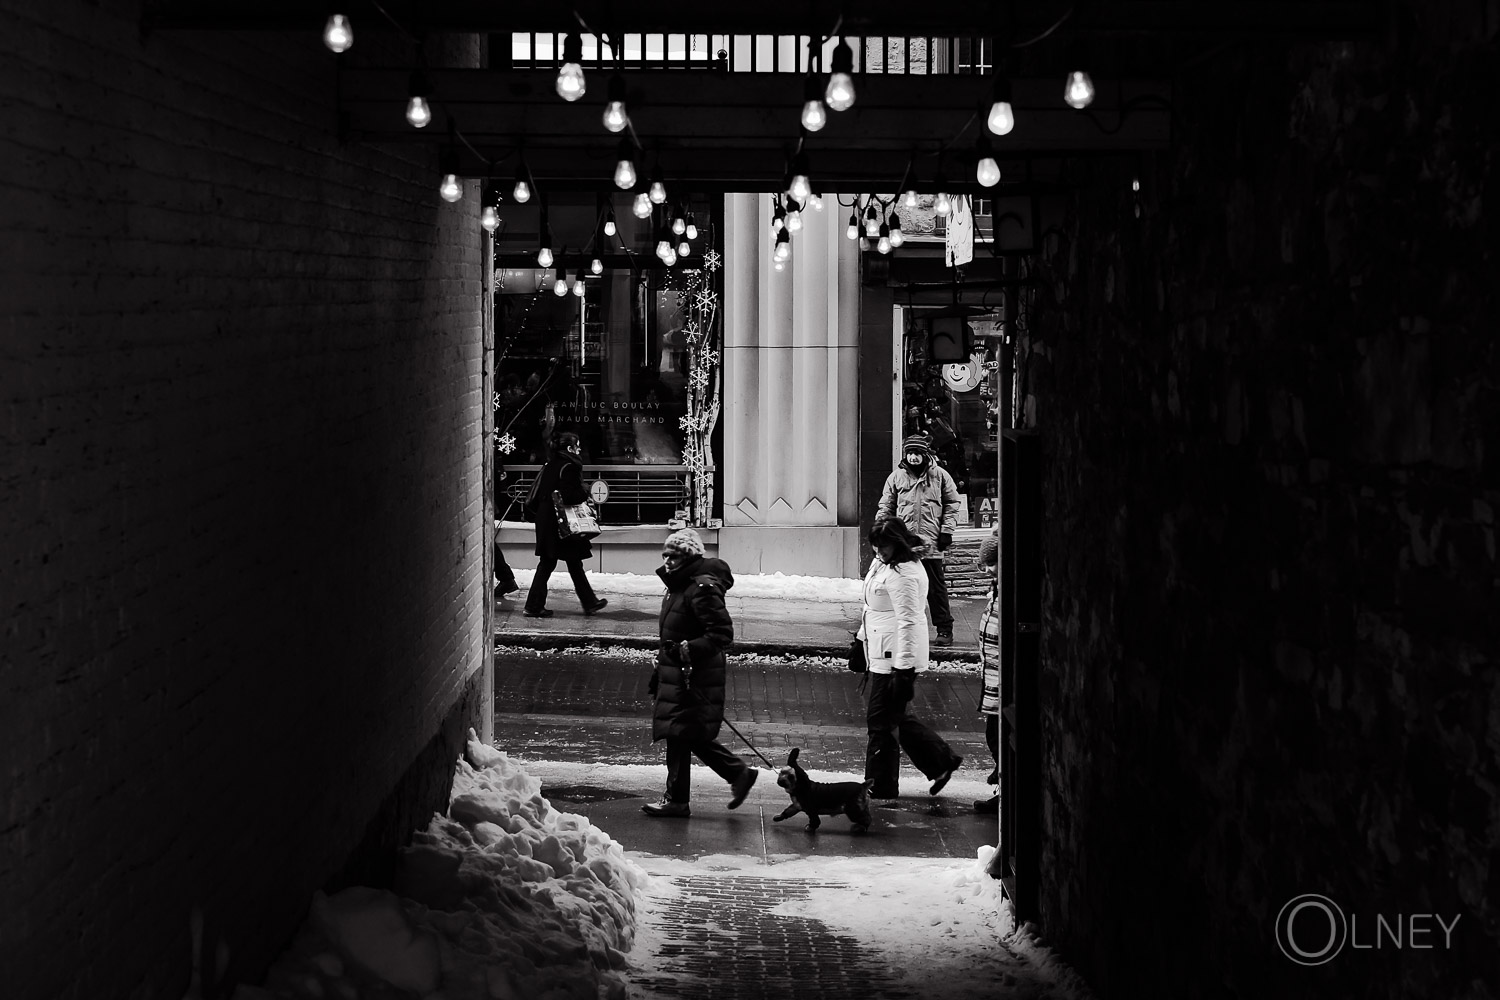 from an alley into st-jean street in Quebec City